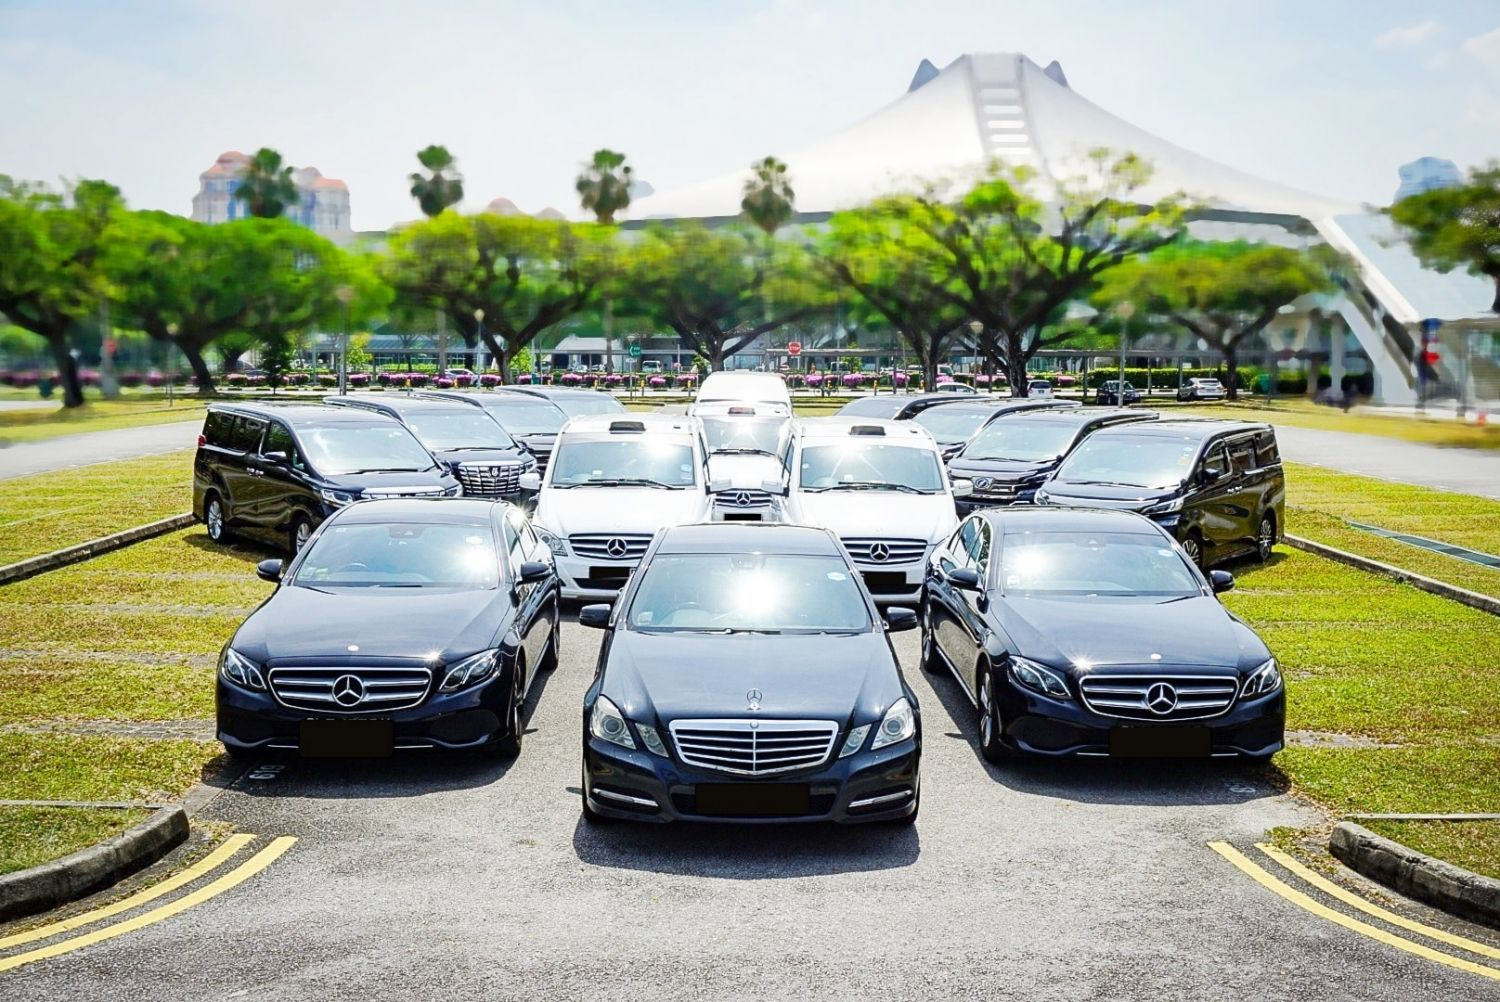 Maxi Cab Singapore Airport Transfer Singapore